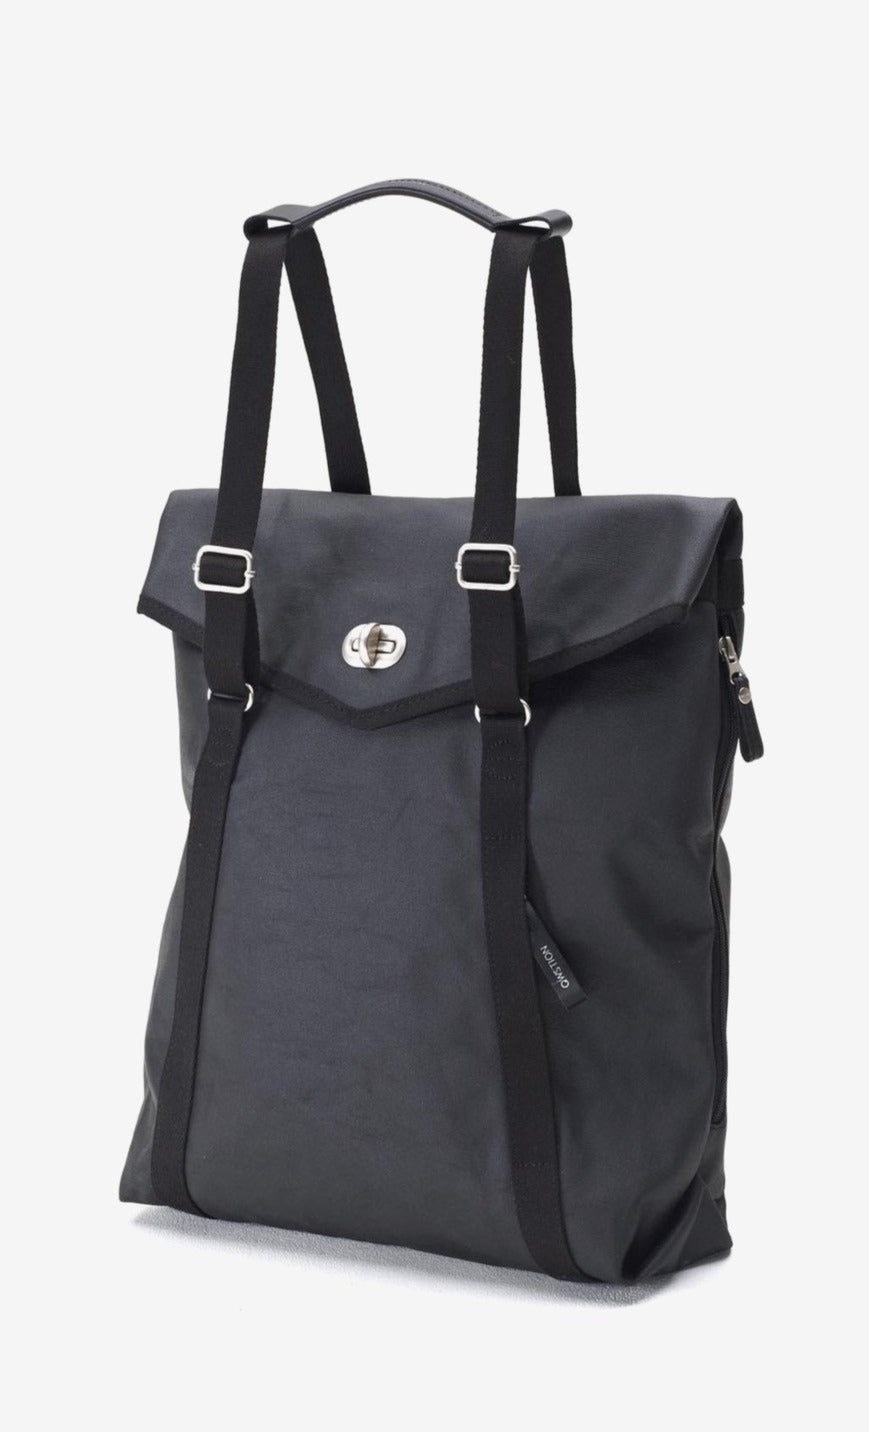 Tote organic jet black, Bags, QWSTION - Six and Sons